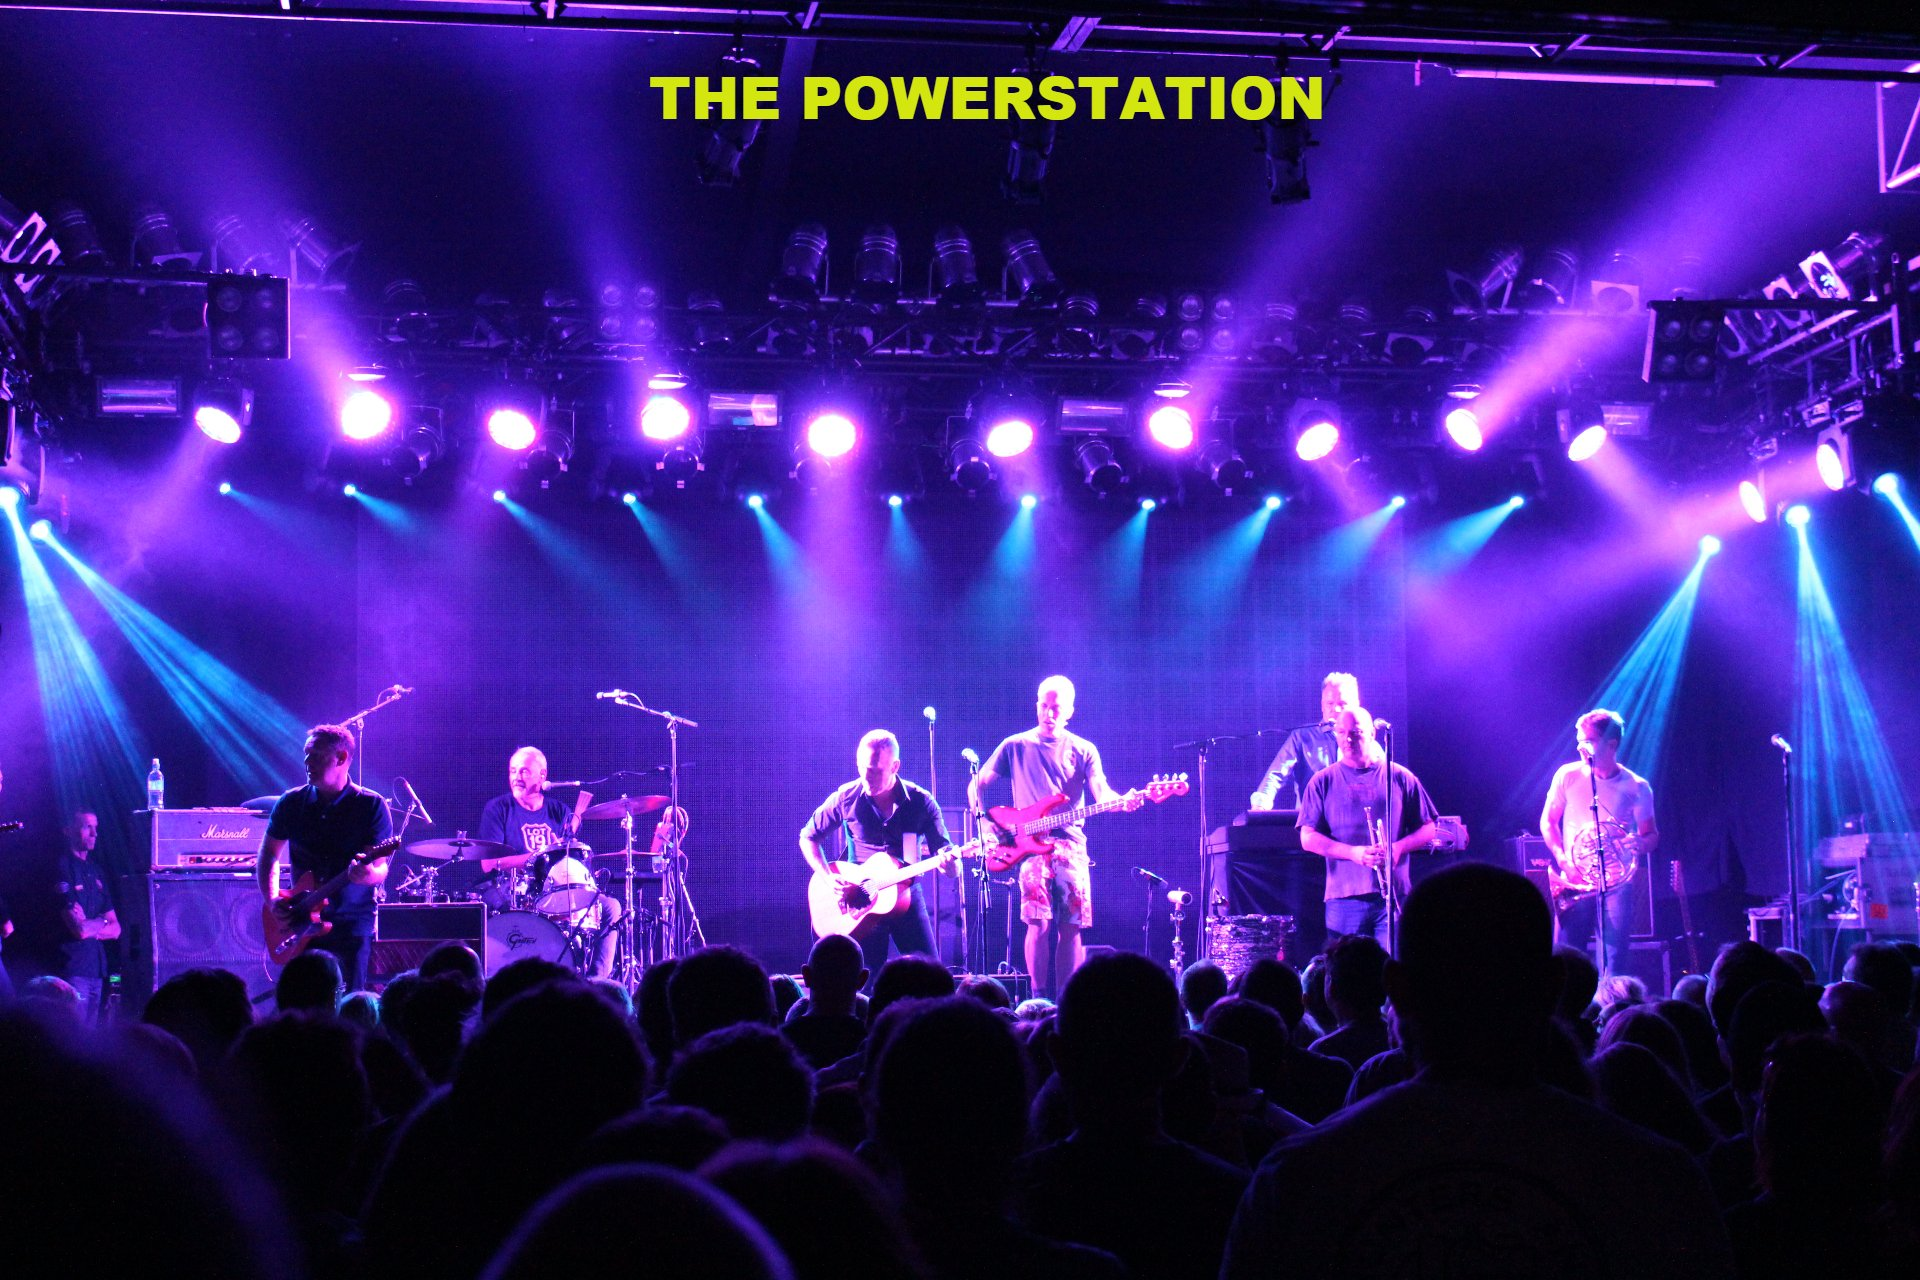 THE POWERSTATION